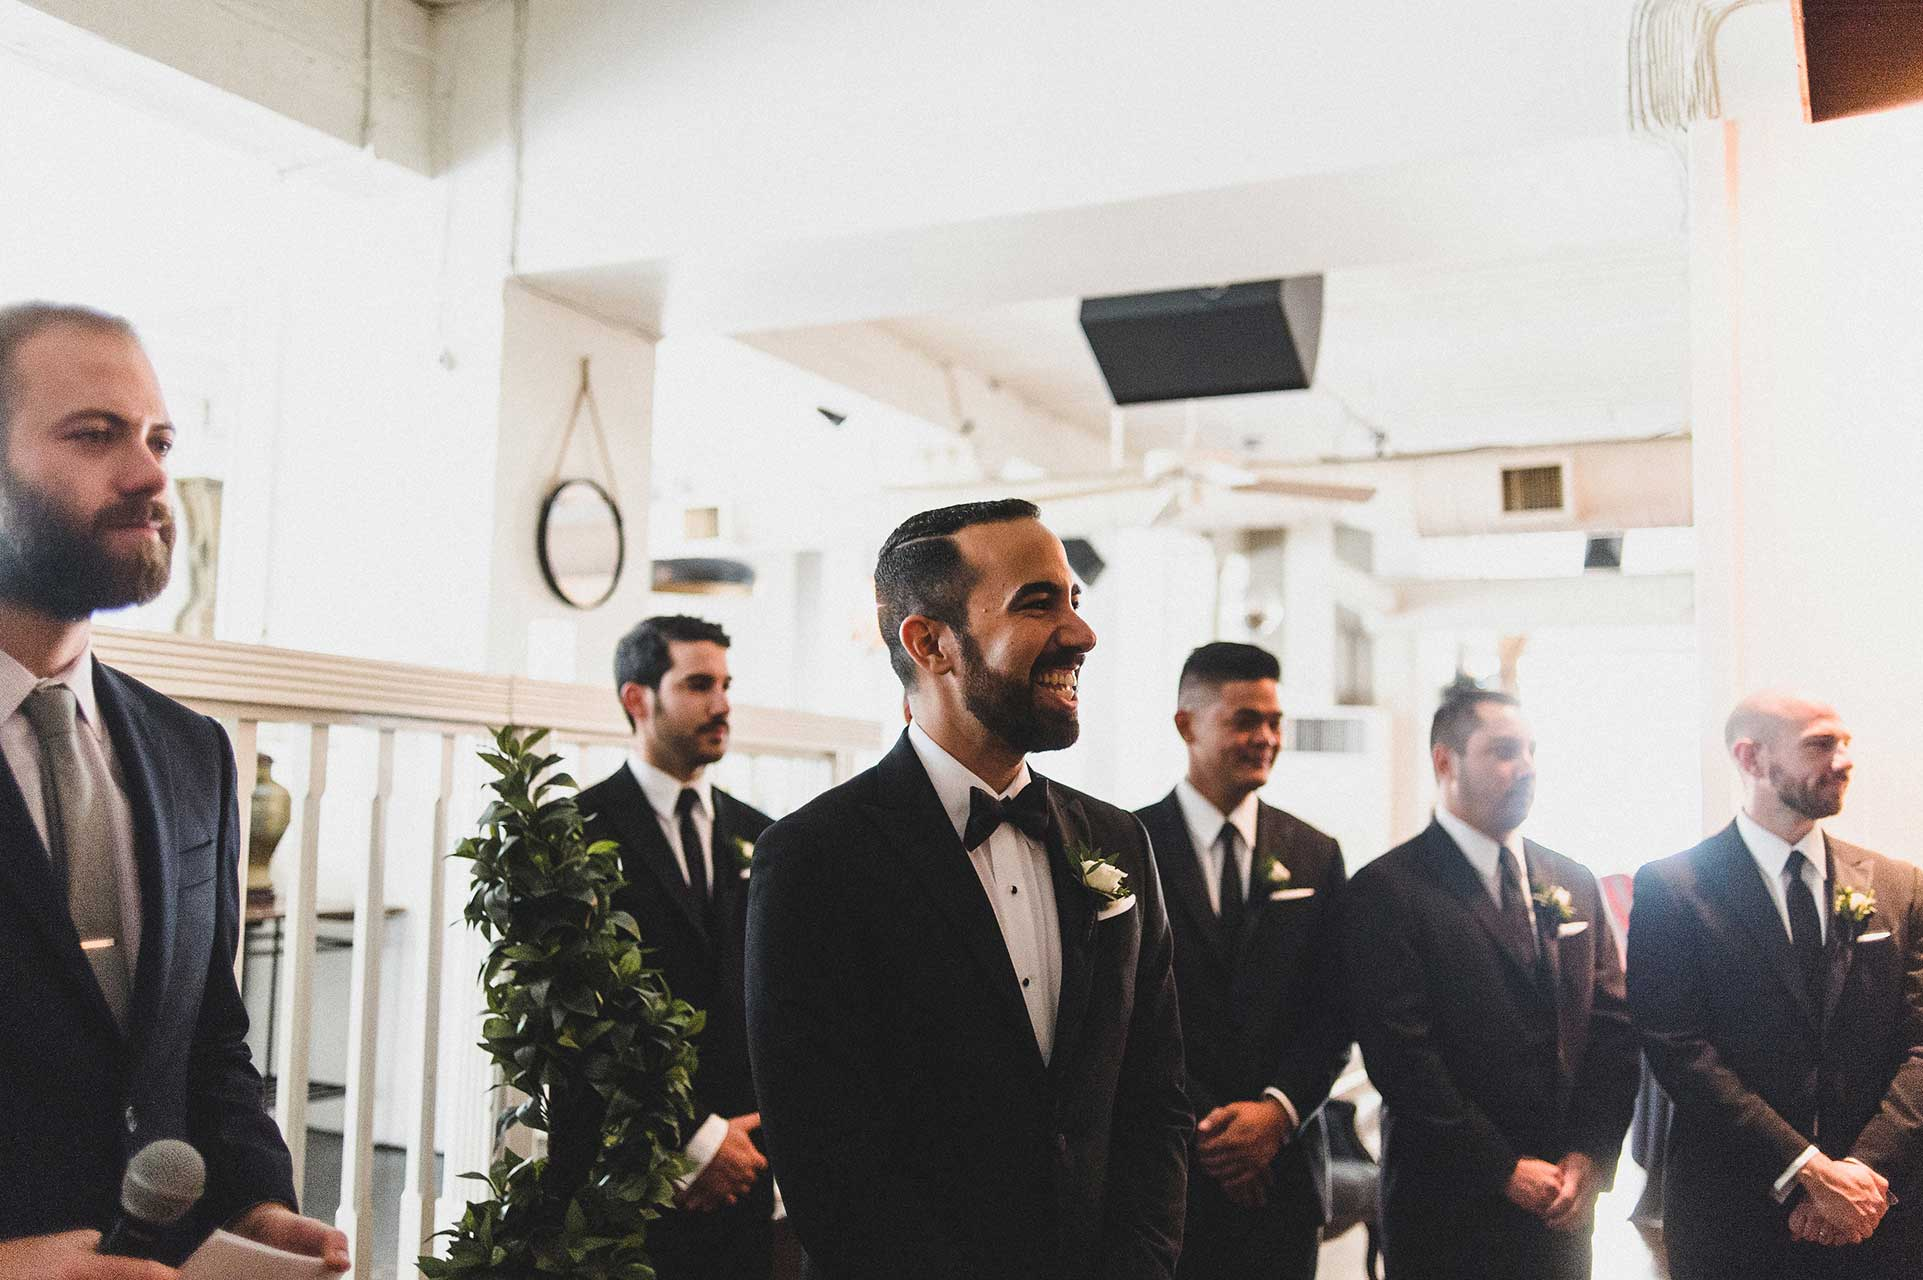 Wedding Venues Toronto - Wedding Ceremony - Urban Loft